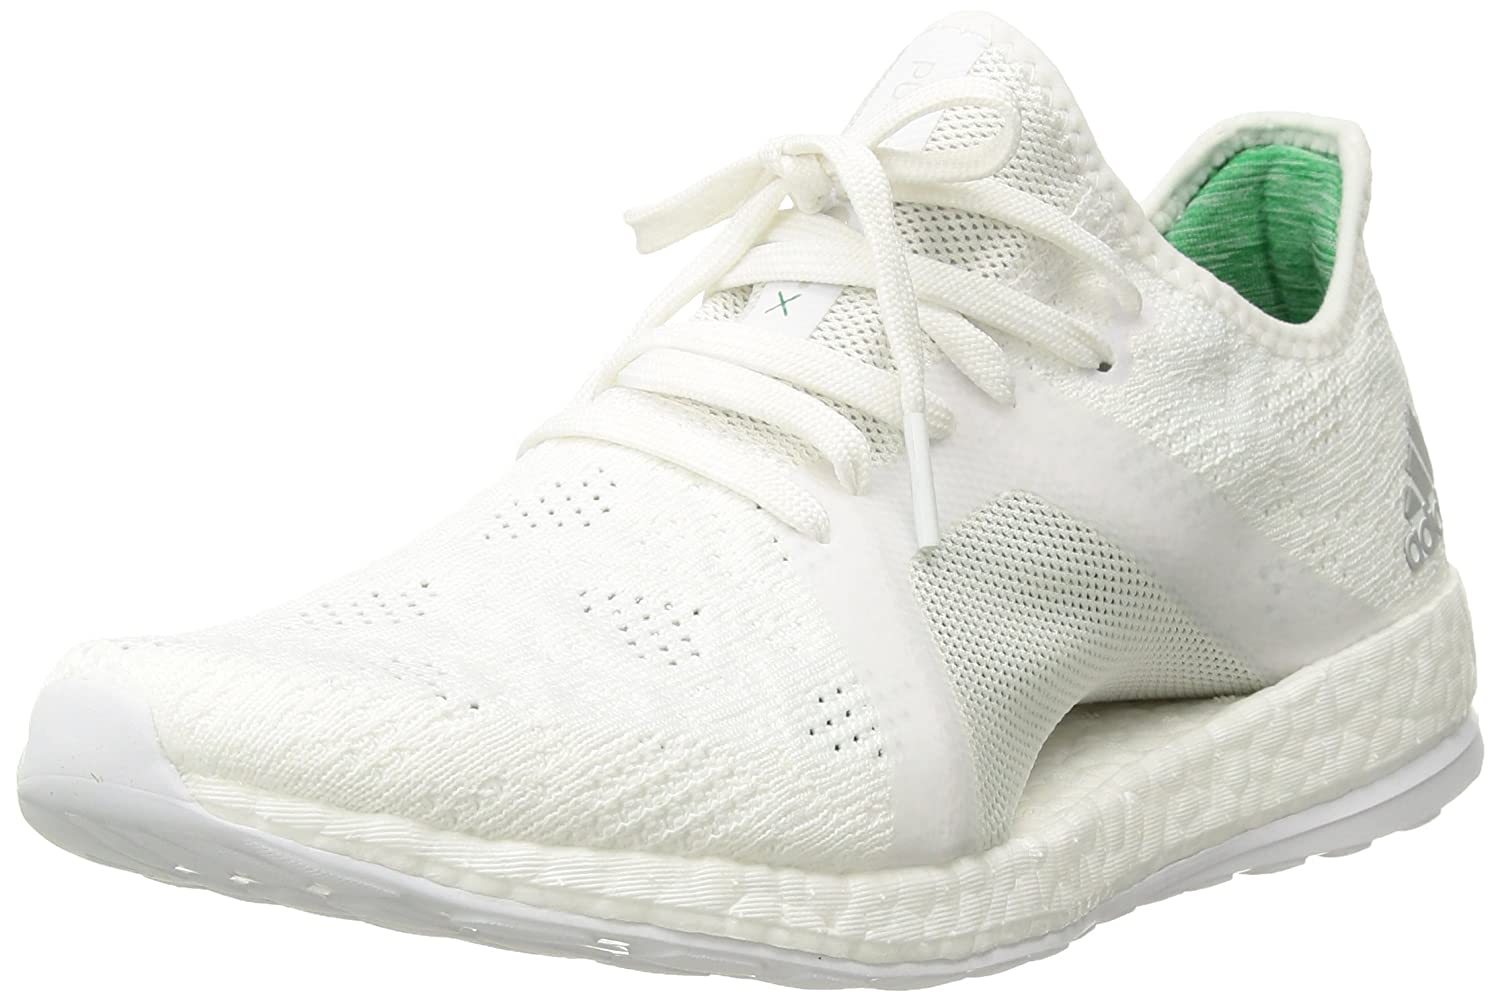 adidas Women's Pureboost X Element Running Shoe B071Z6D3V4 9 B(M) US|White/Grey Two/Green